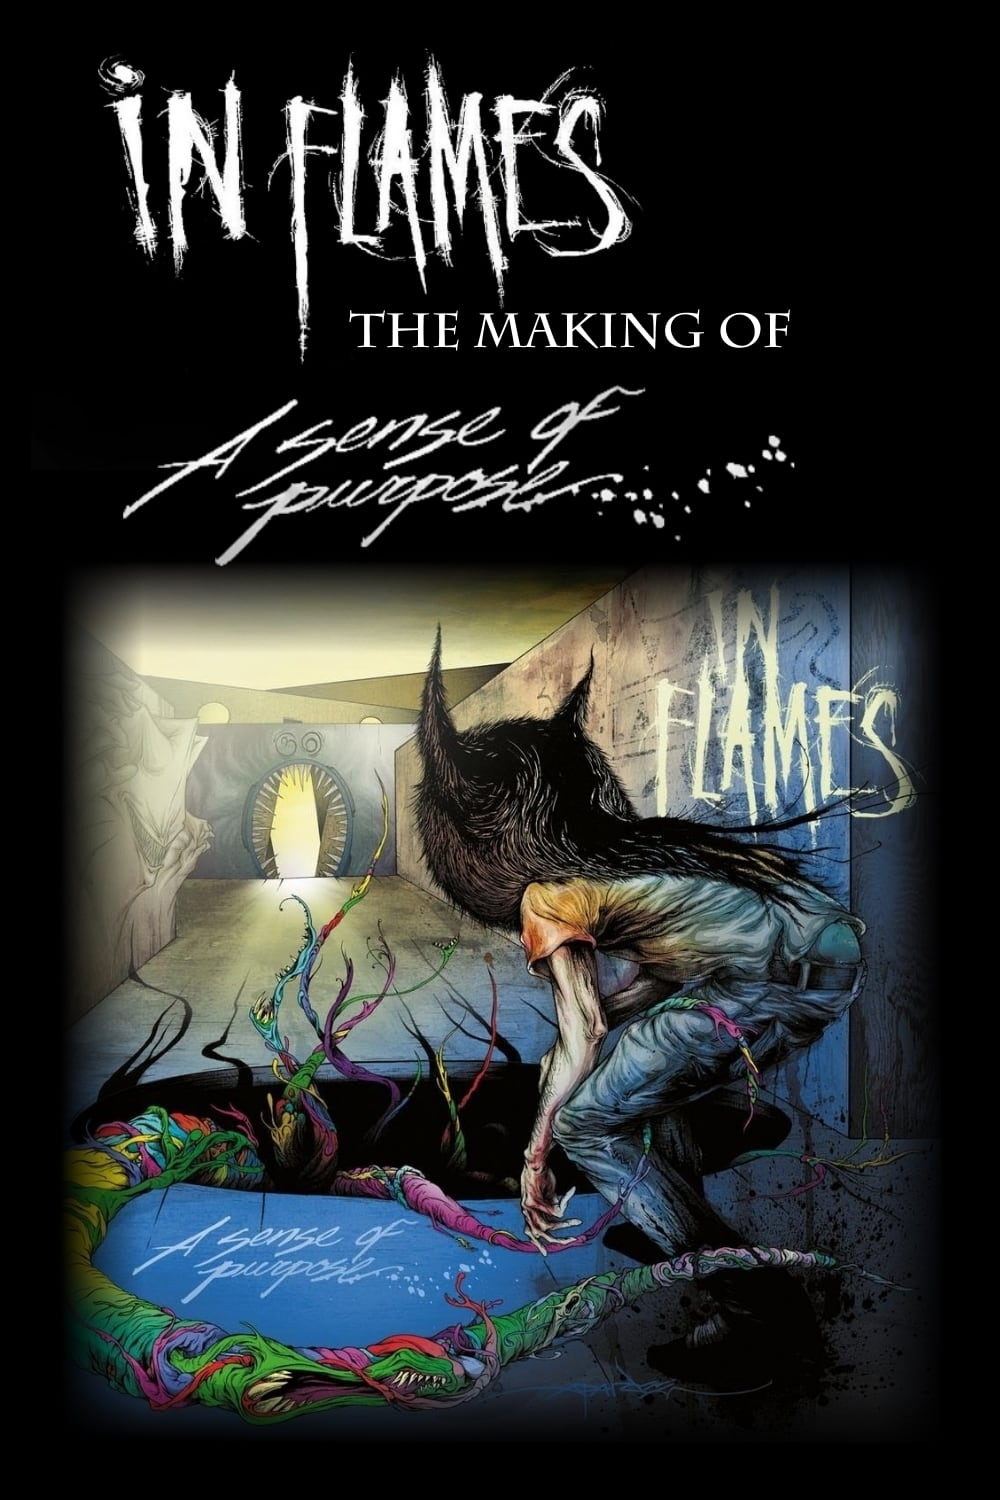 In Flames - The Making of: A Sense of Purpose (2008)